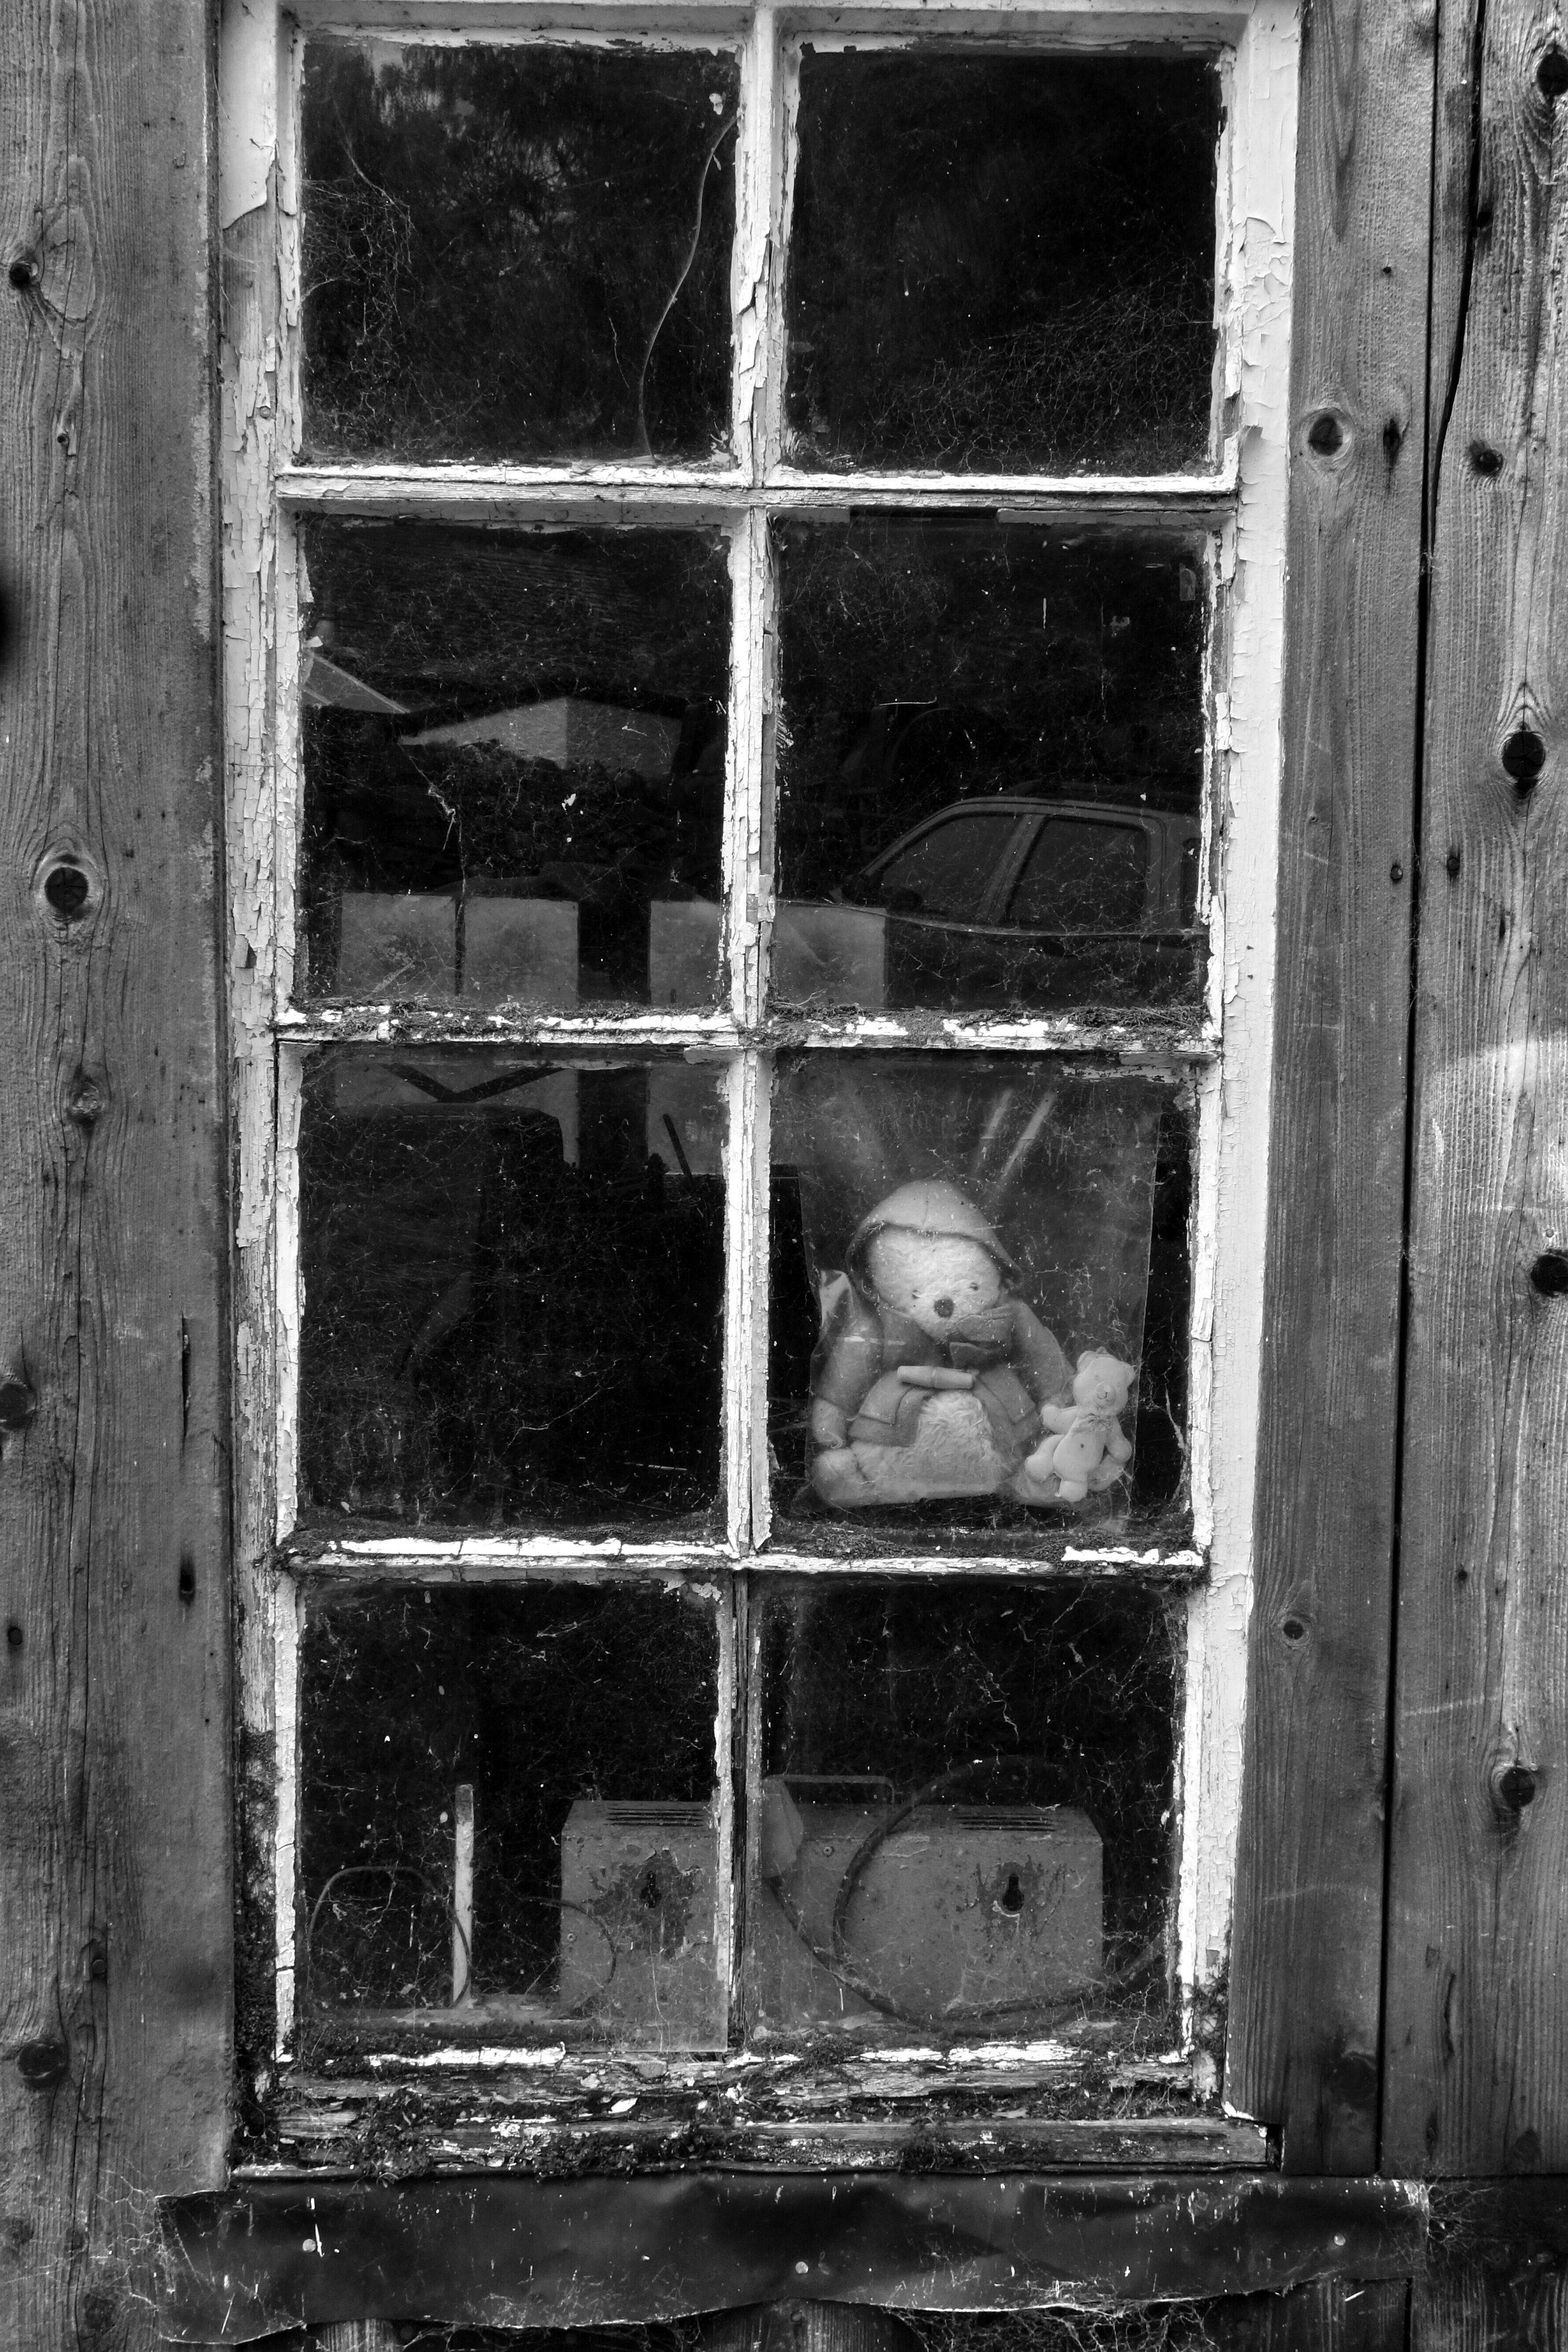 window, door, closed, built structure, building exterior, animal themes, old, metal, glass - material, safety, architecture, house, one animal, wood - material, protection, abandoned, weathered, security, damaged, entrance